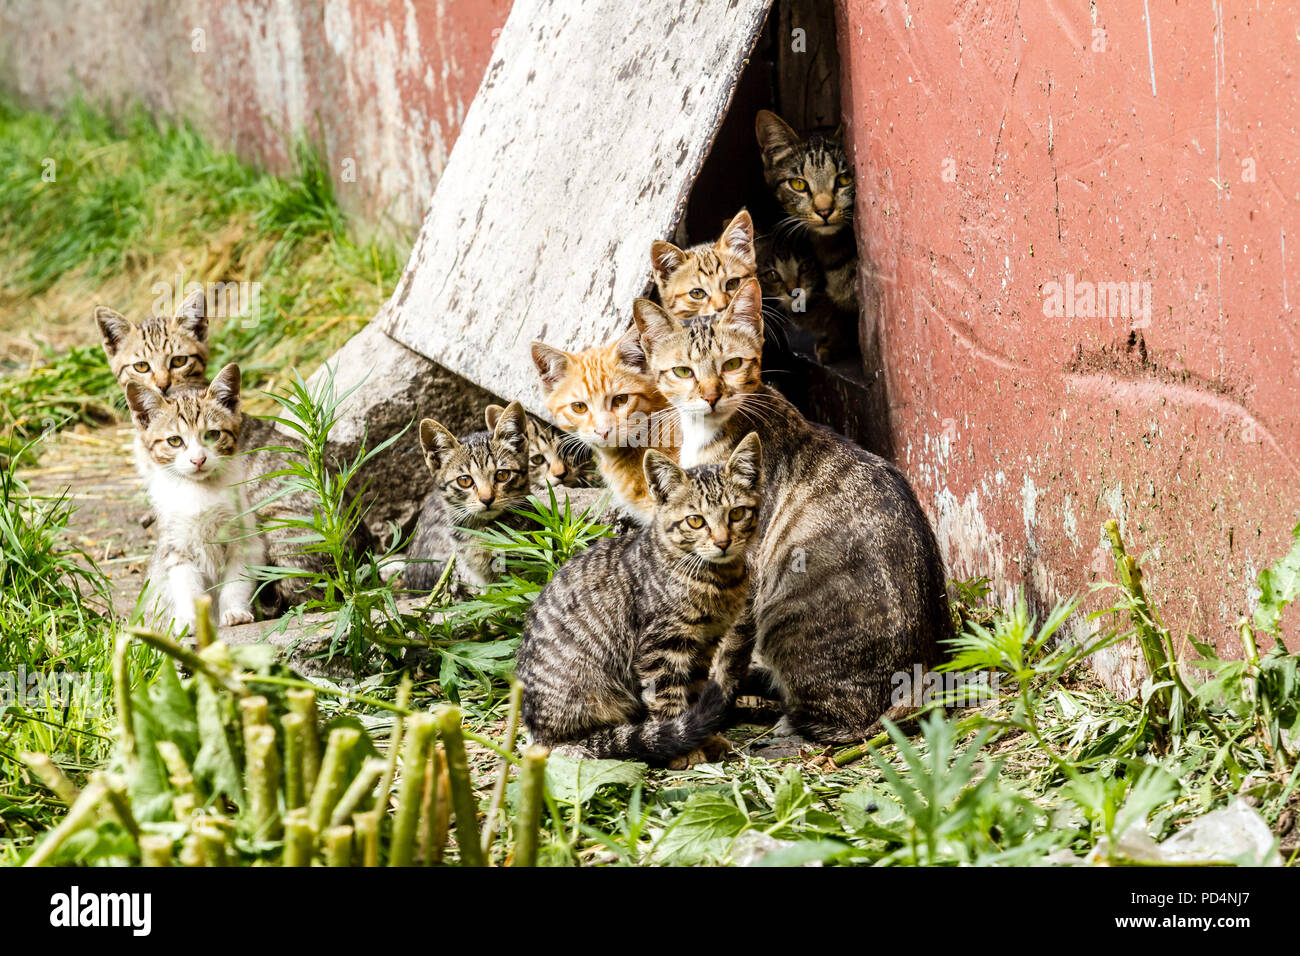 Large group of homeless kittens in a city street near the house - Stock Image